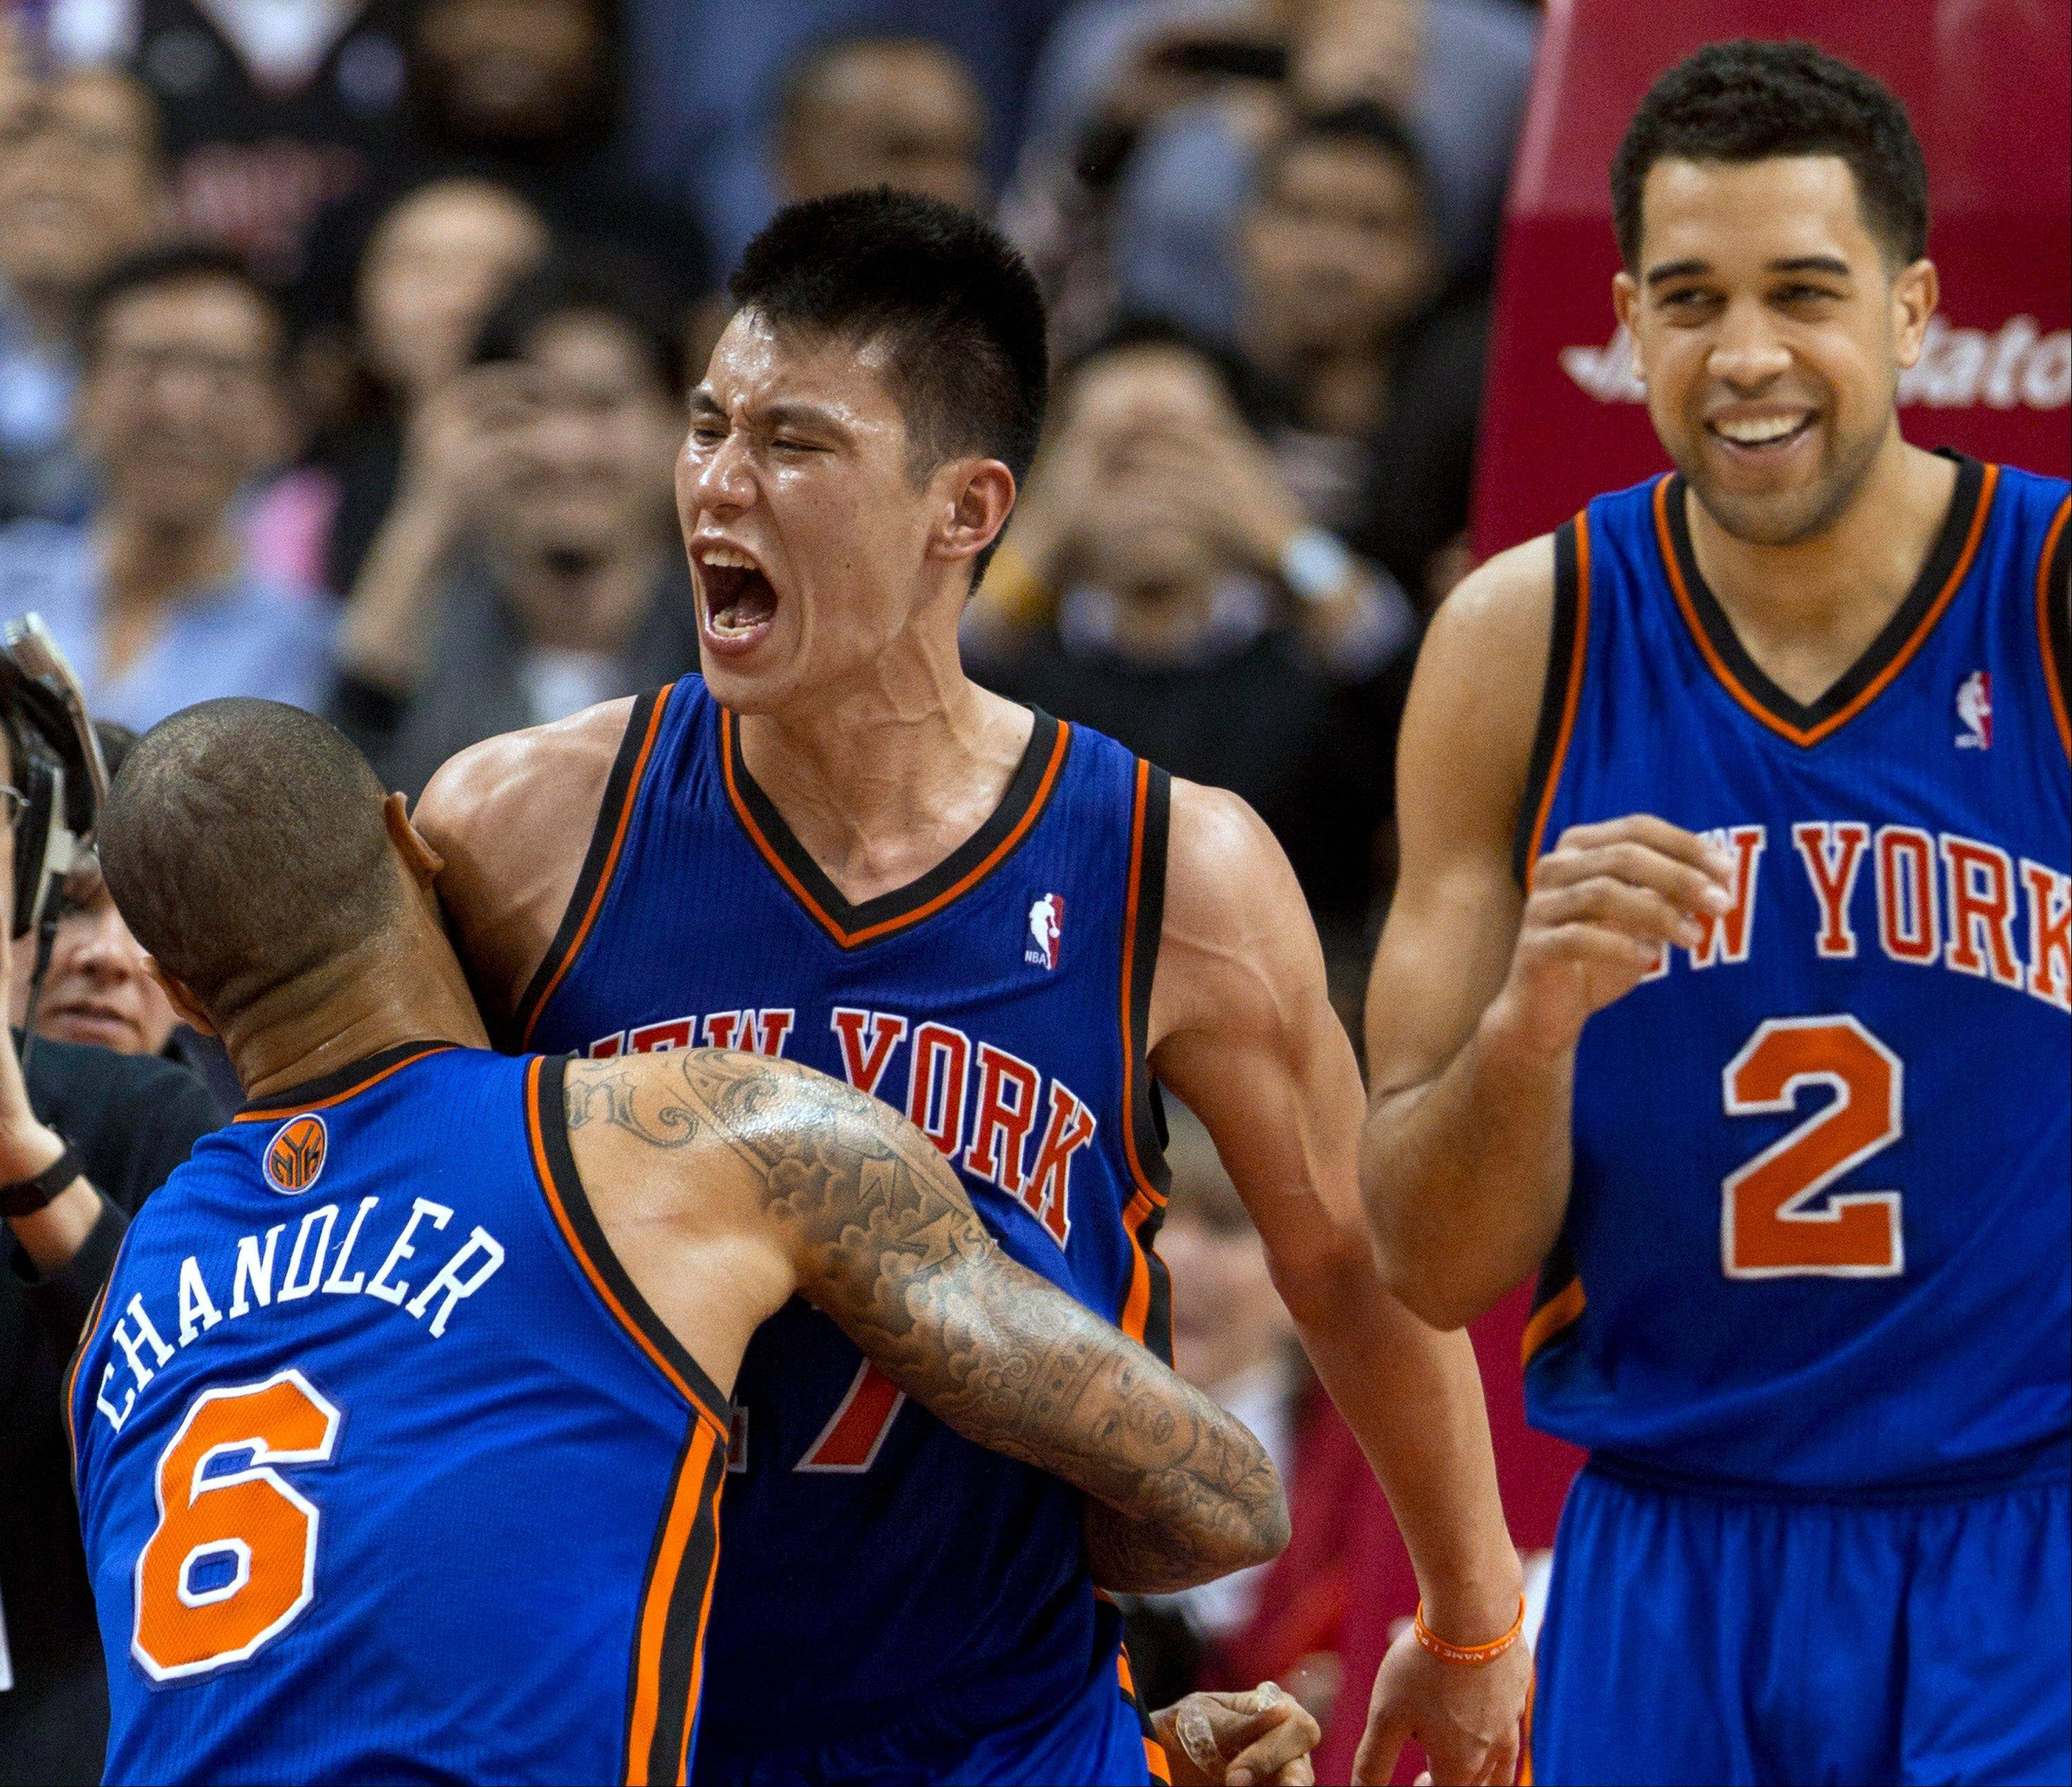 New York Knicks guard Jeremy Lin celebrates with teammates Tyson Chandler and Landry Fields after his game-winning 3-pointer Tuesday against the Toronto Raptors.